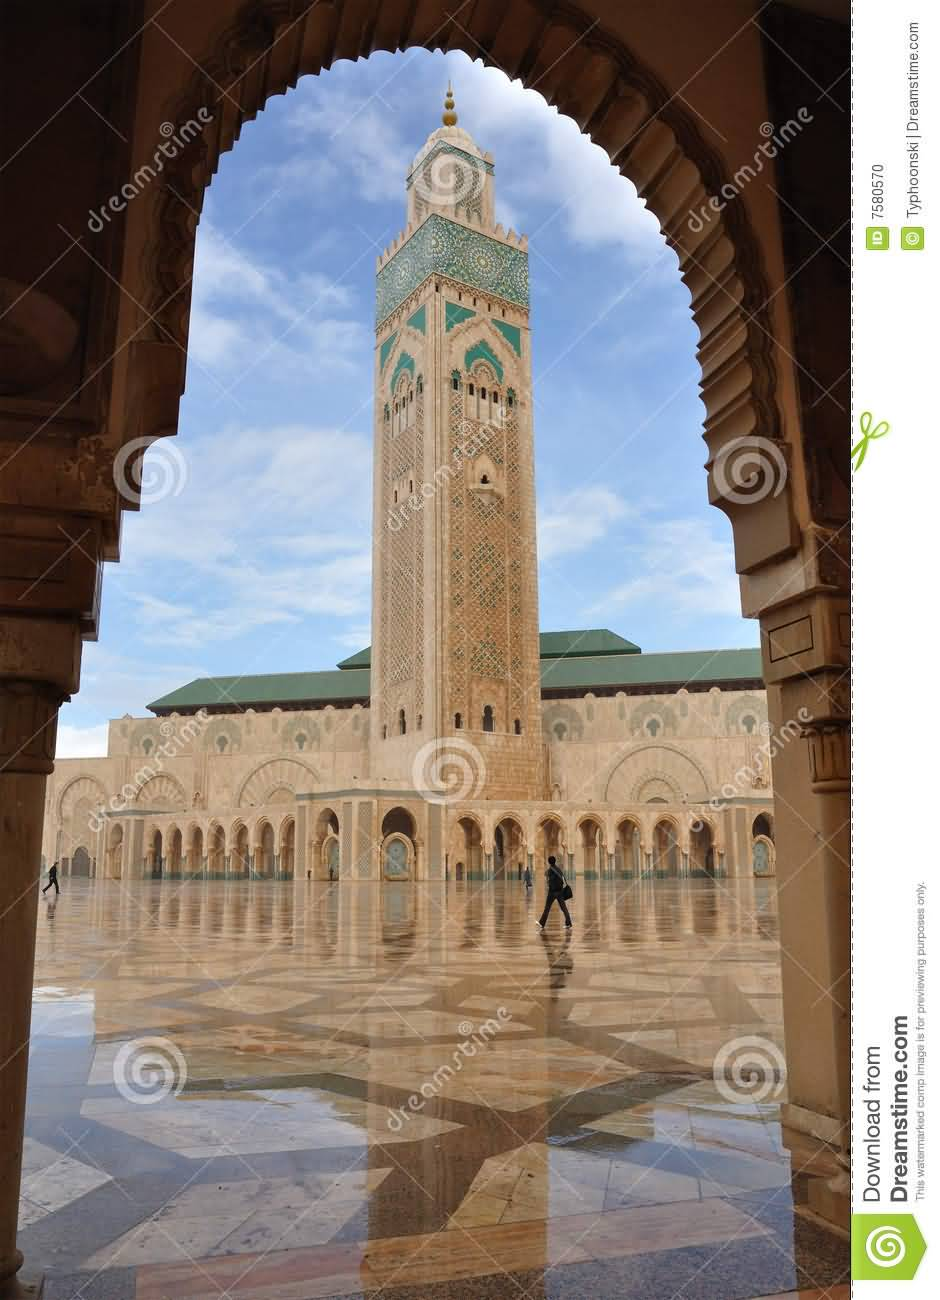 50 Adorable Hassan Ii Mosque Pictures And Photos